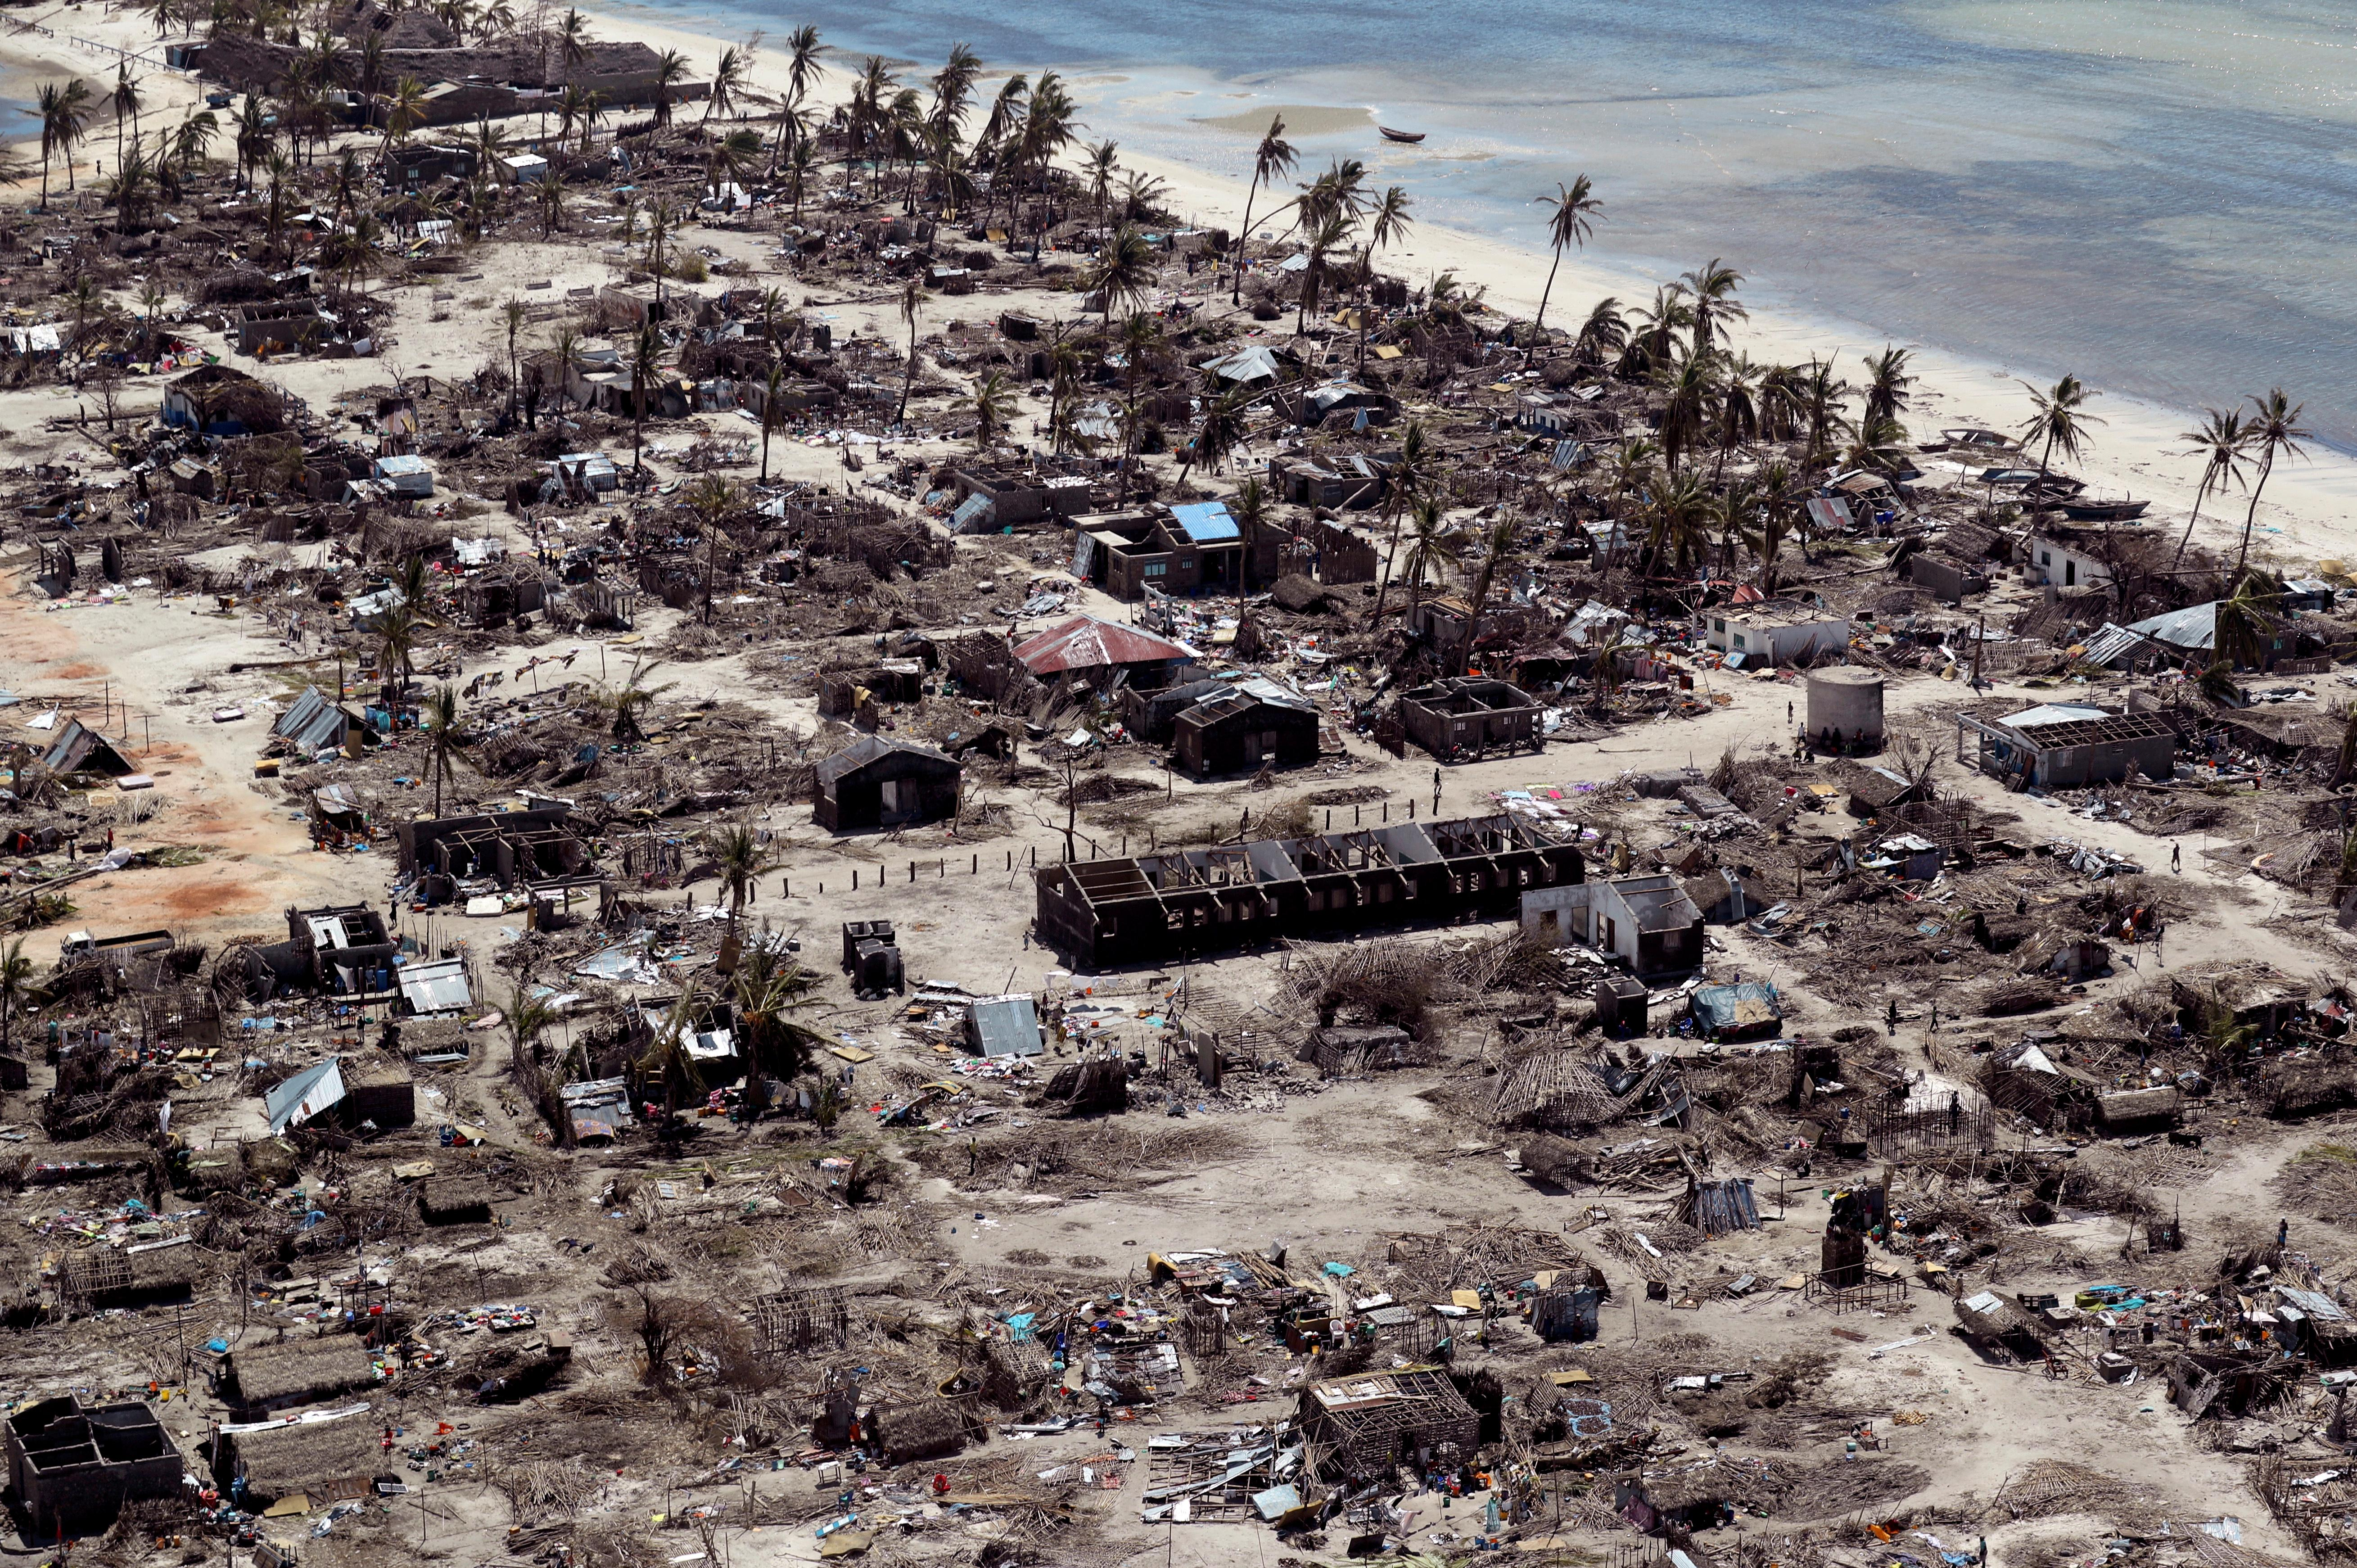 Mozambique needs $3.2 billion for post-cyclone reconstruction: local media